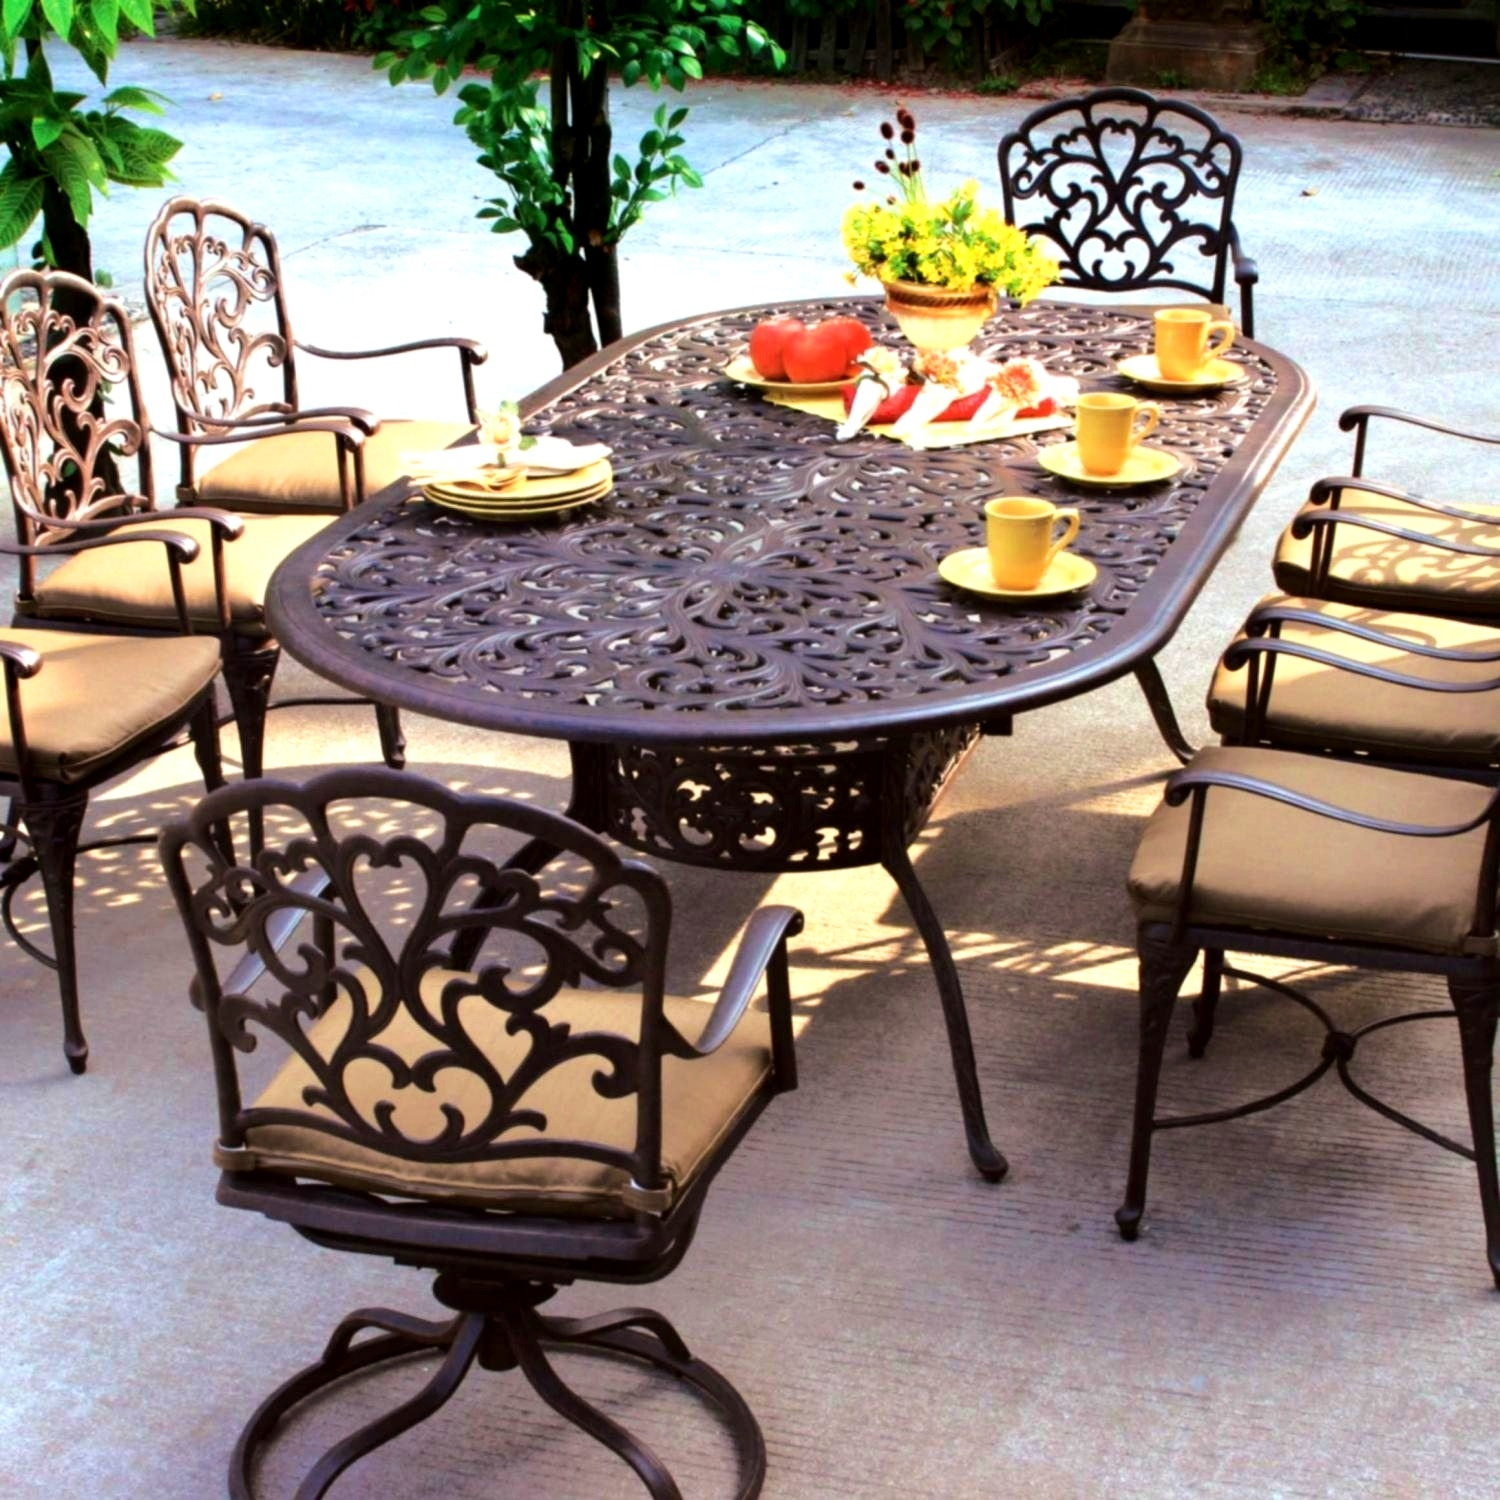 Sears Patio Furniture | Sear Appliances | Cheap Wicker Patio Furniture